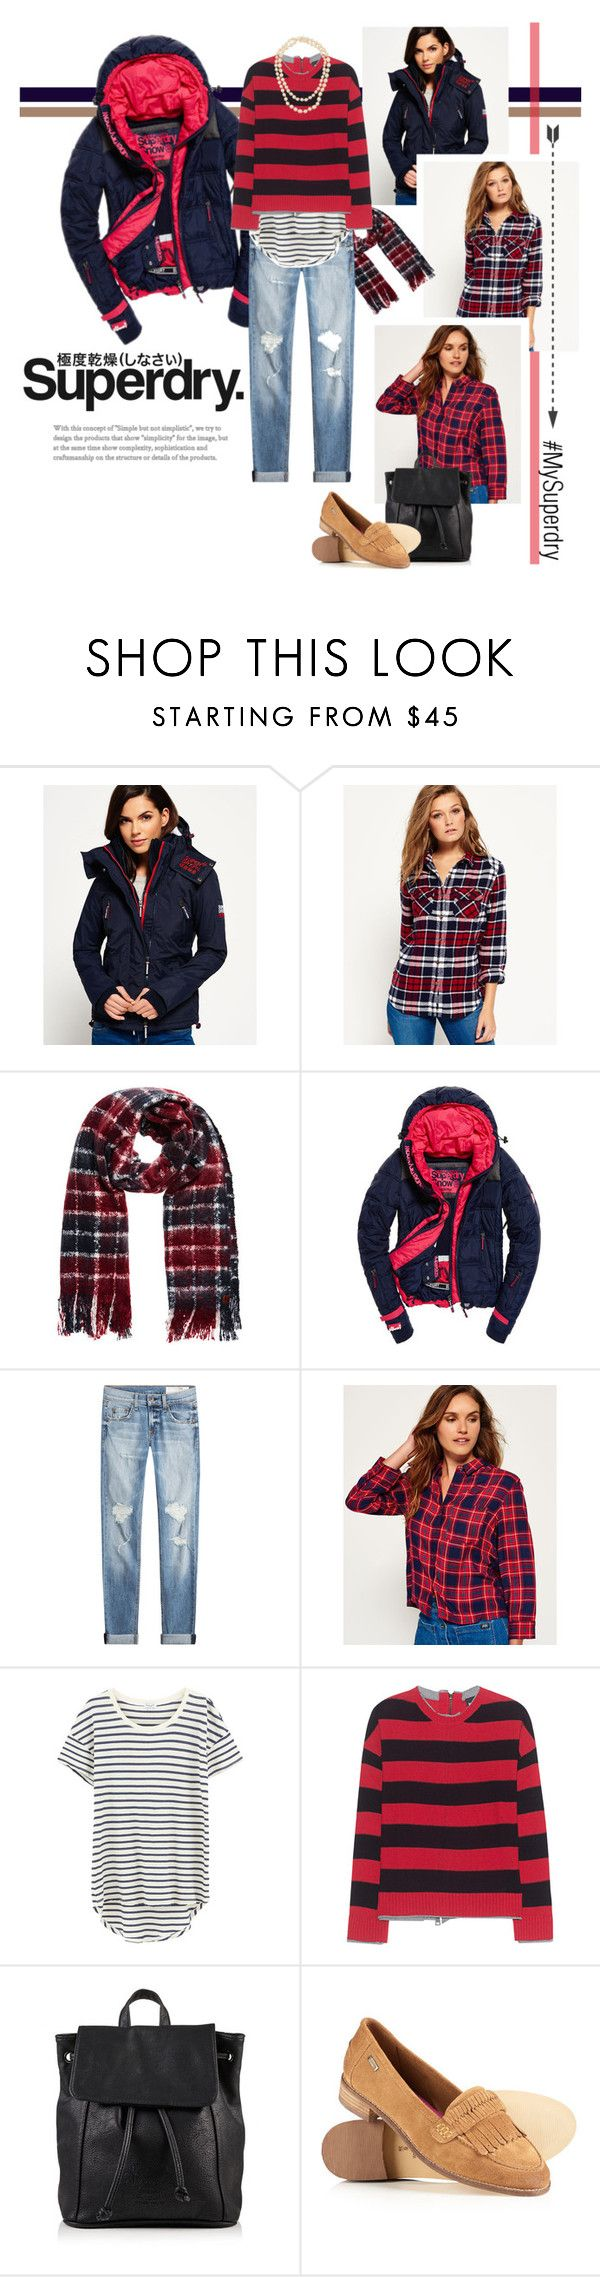 """""""The Cover Up – Jackets by Superdry: Contest Entry"""" by lisalockhart ❤ liked on Polyvore featuring Superdry, rag & bone, Splendid, Just Cavalli, Chanel and MySuperdry"""